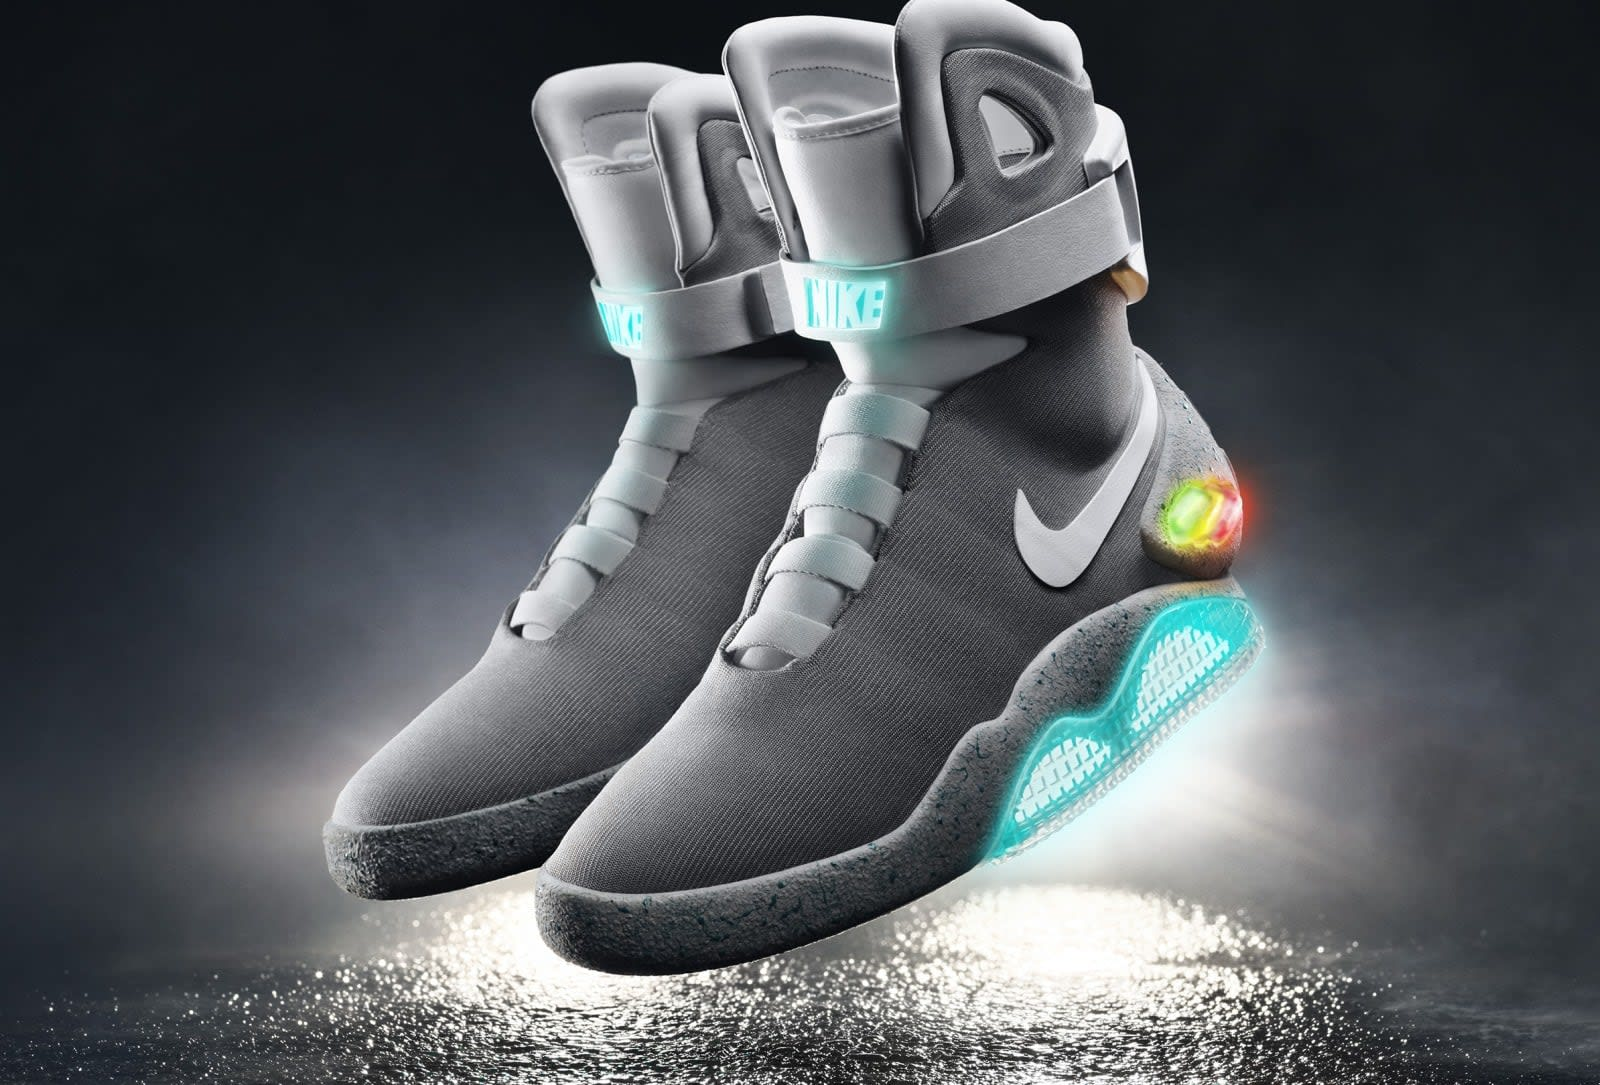 7e7afd0fd20f Nike s first self-lacing basketball shoes go on sale in 2019 for  350